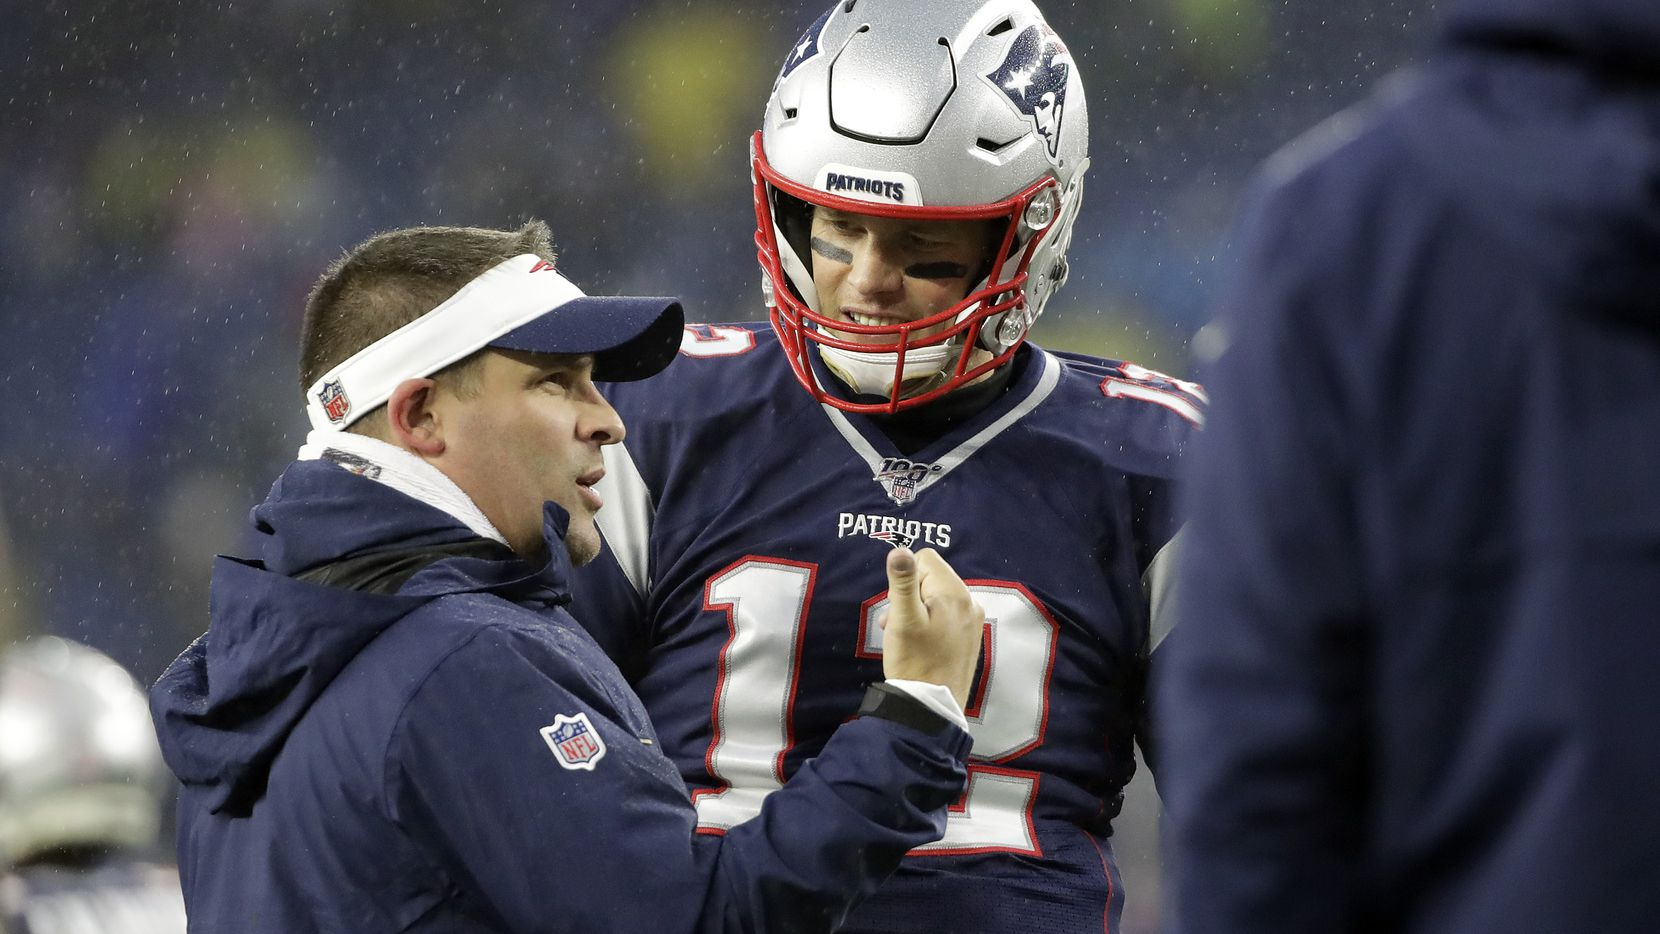 New England Patriots offensive coordinator Josh McDaniels, left, speaks to quarterback Tom Brady as the team warms up before an NFL football game against the Dallas Cowboys, Sunday, Nov. 24, 2019, in Foxborough, Mass.